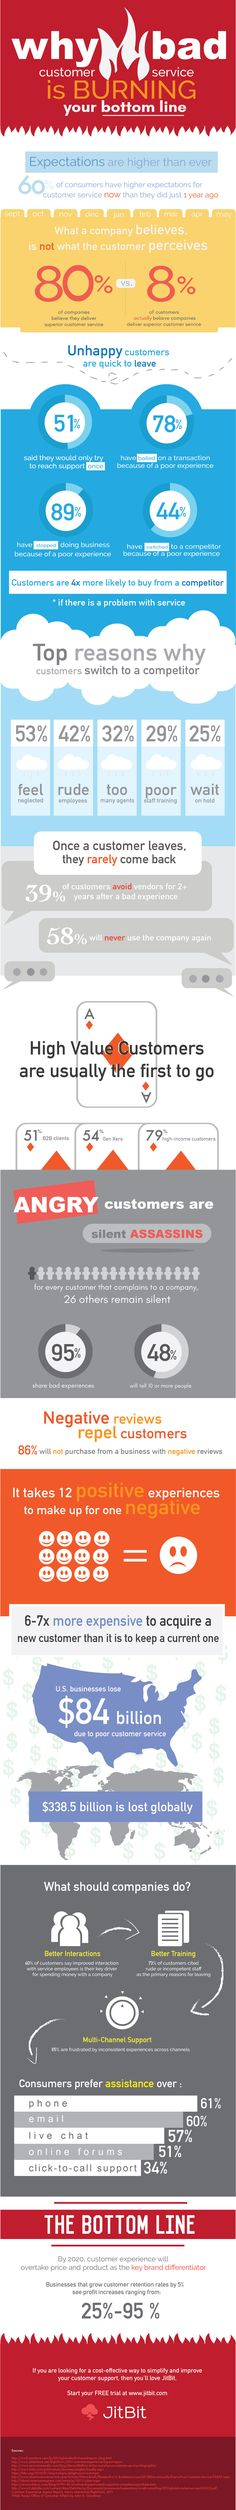 Why Bad Customer Service Is Burning Your Bottom Line #Infographic #Business #CustomerService